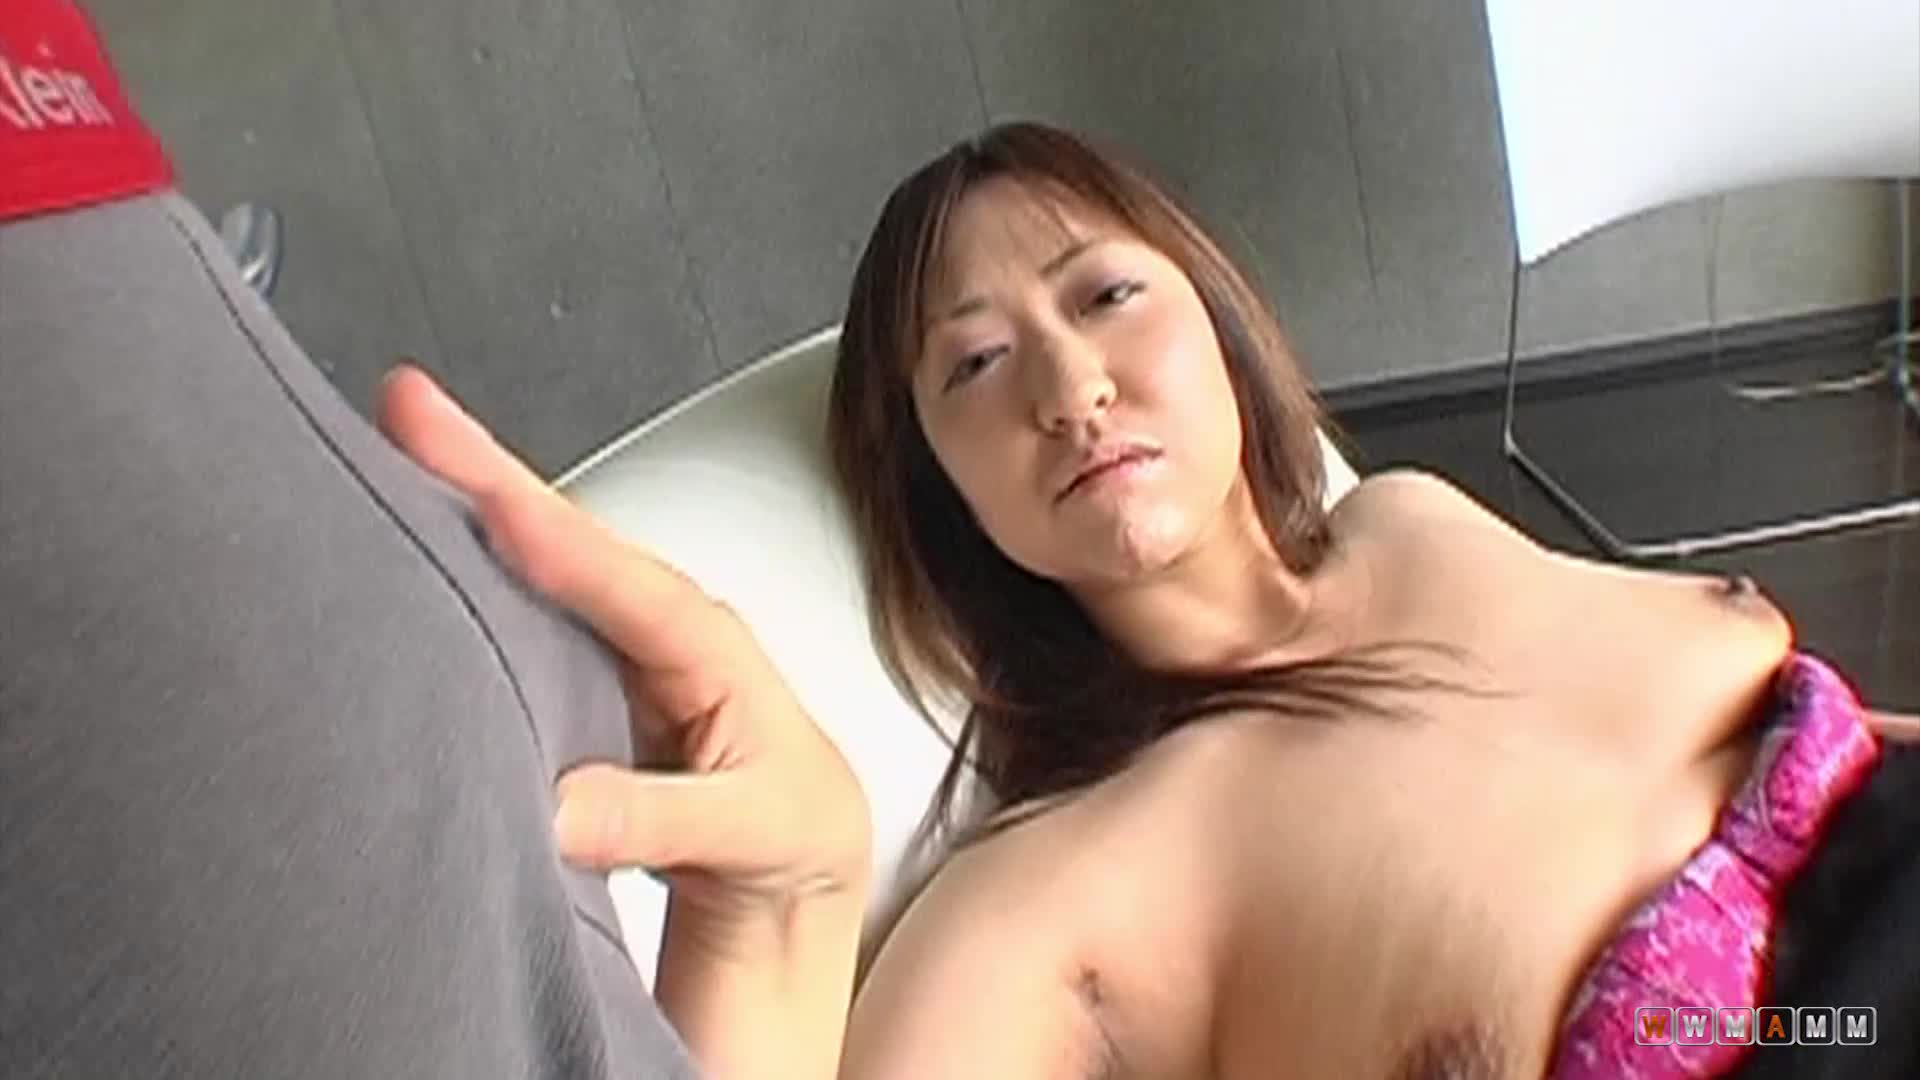 Busty Japanese Teen Has Hairy Pussy Played With Before Hard Fuck